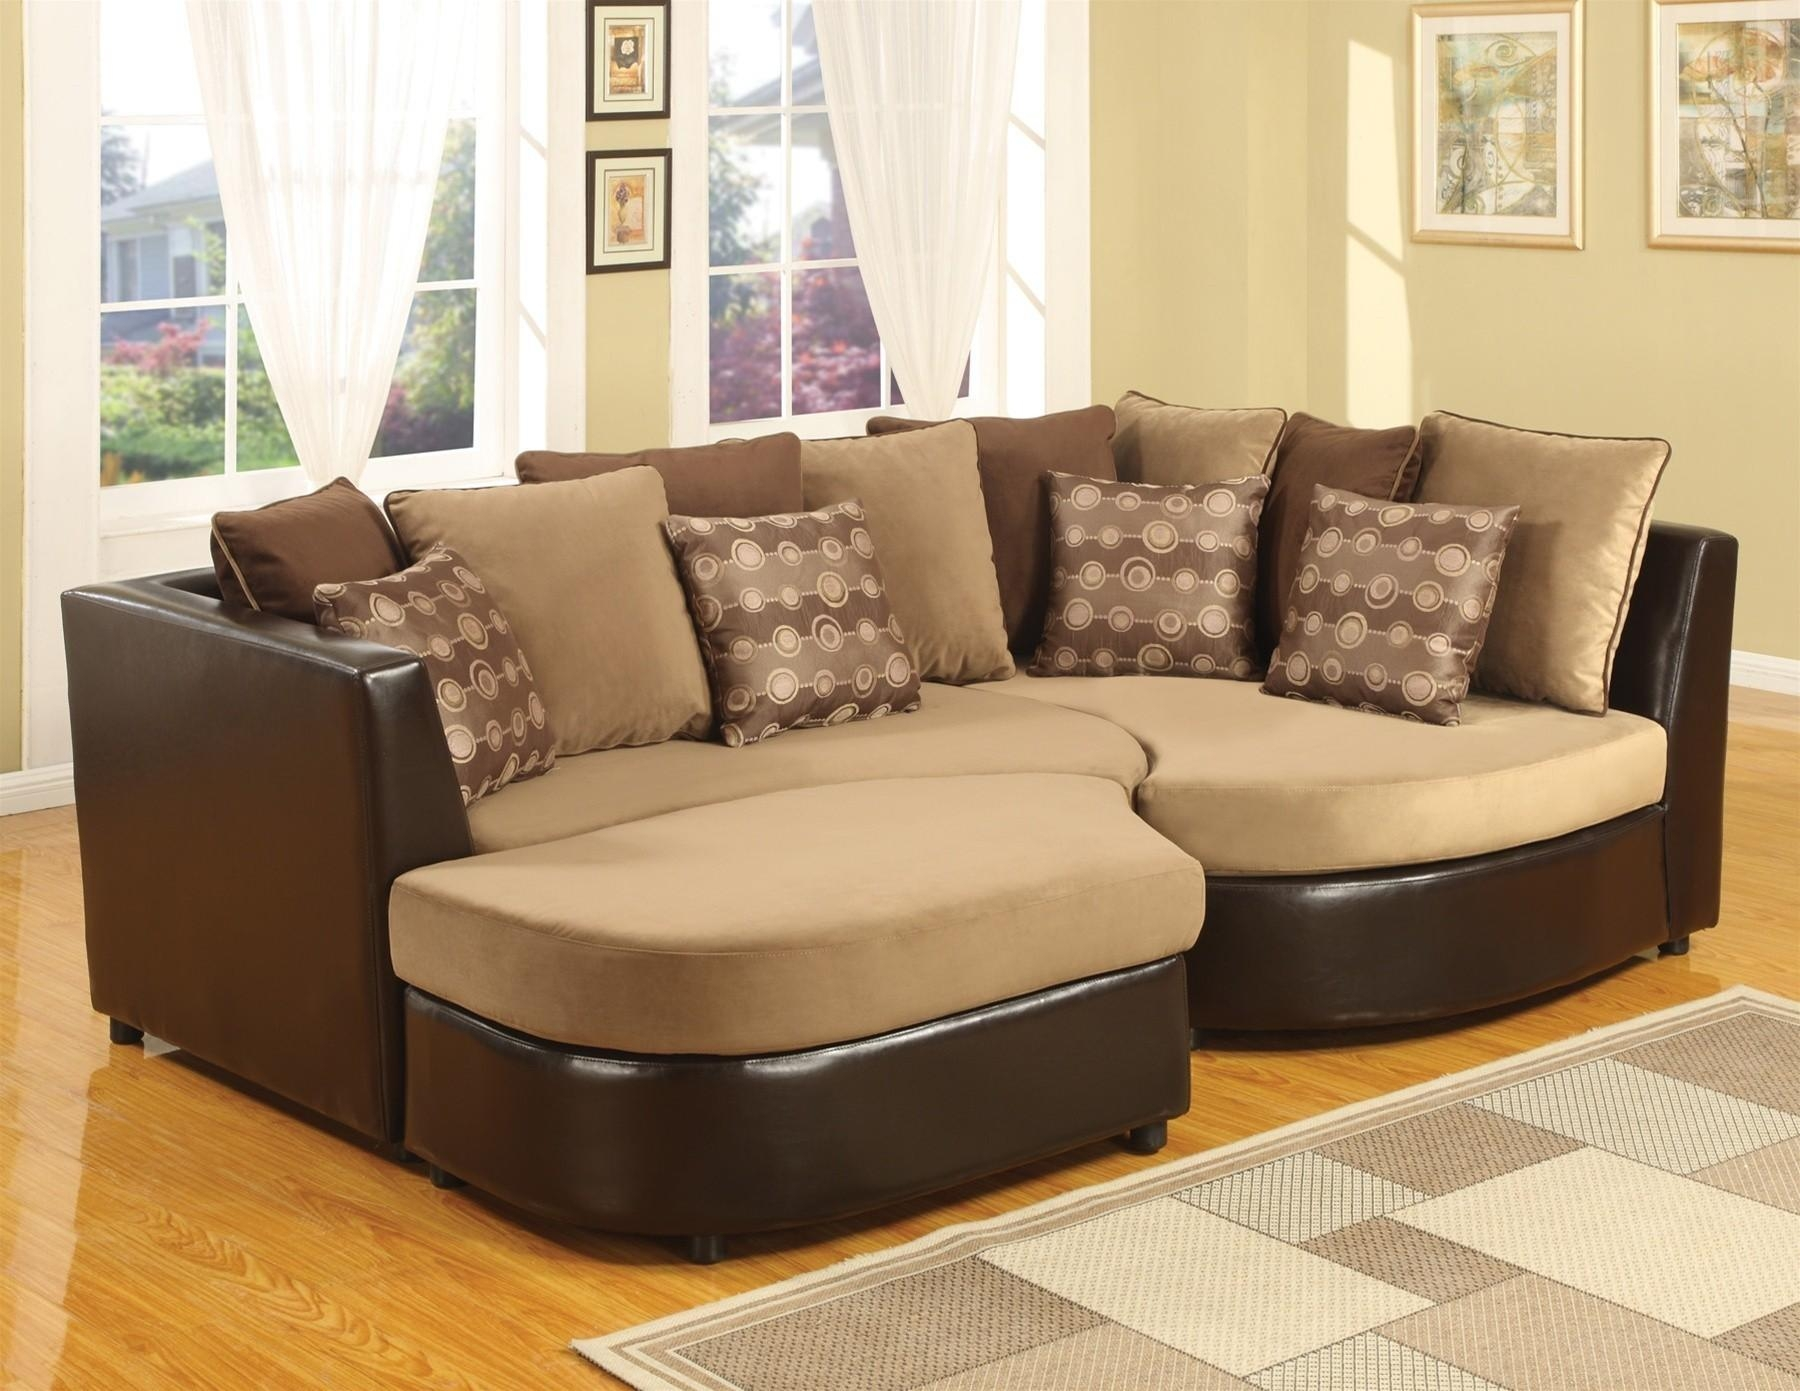 Gray Deep Seat Sectional With Large Ottoman And Chaise Lounge Of For Sectional With Large Ottoman (Image 5 of 20)